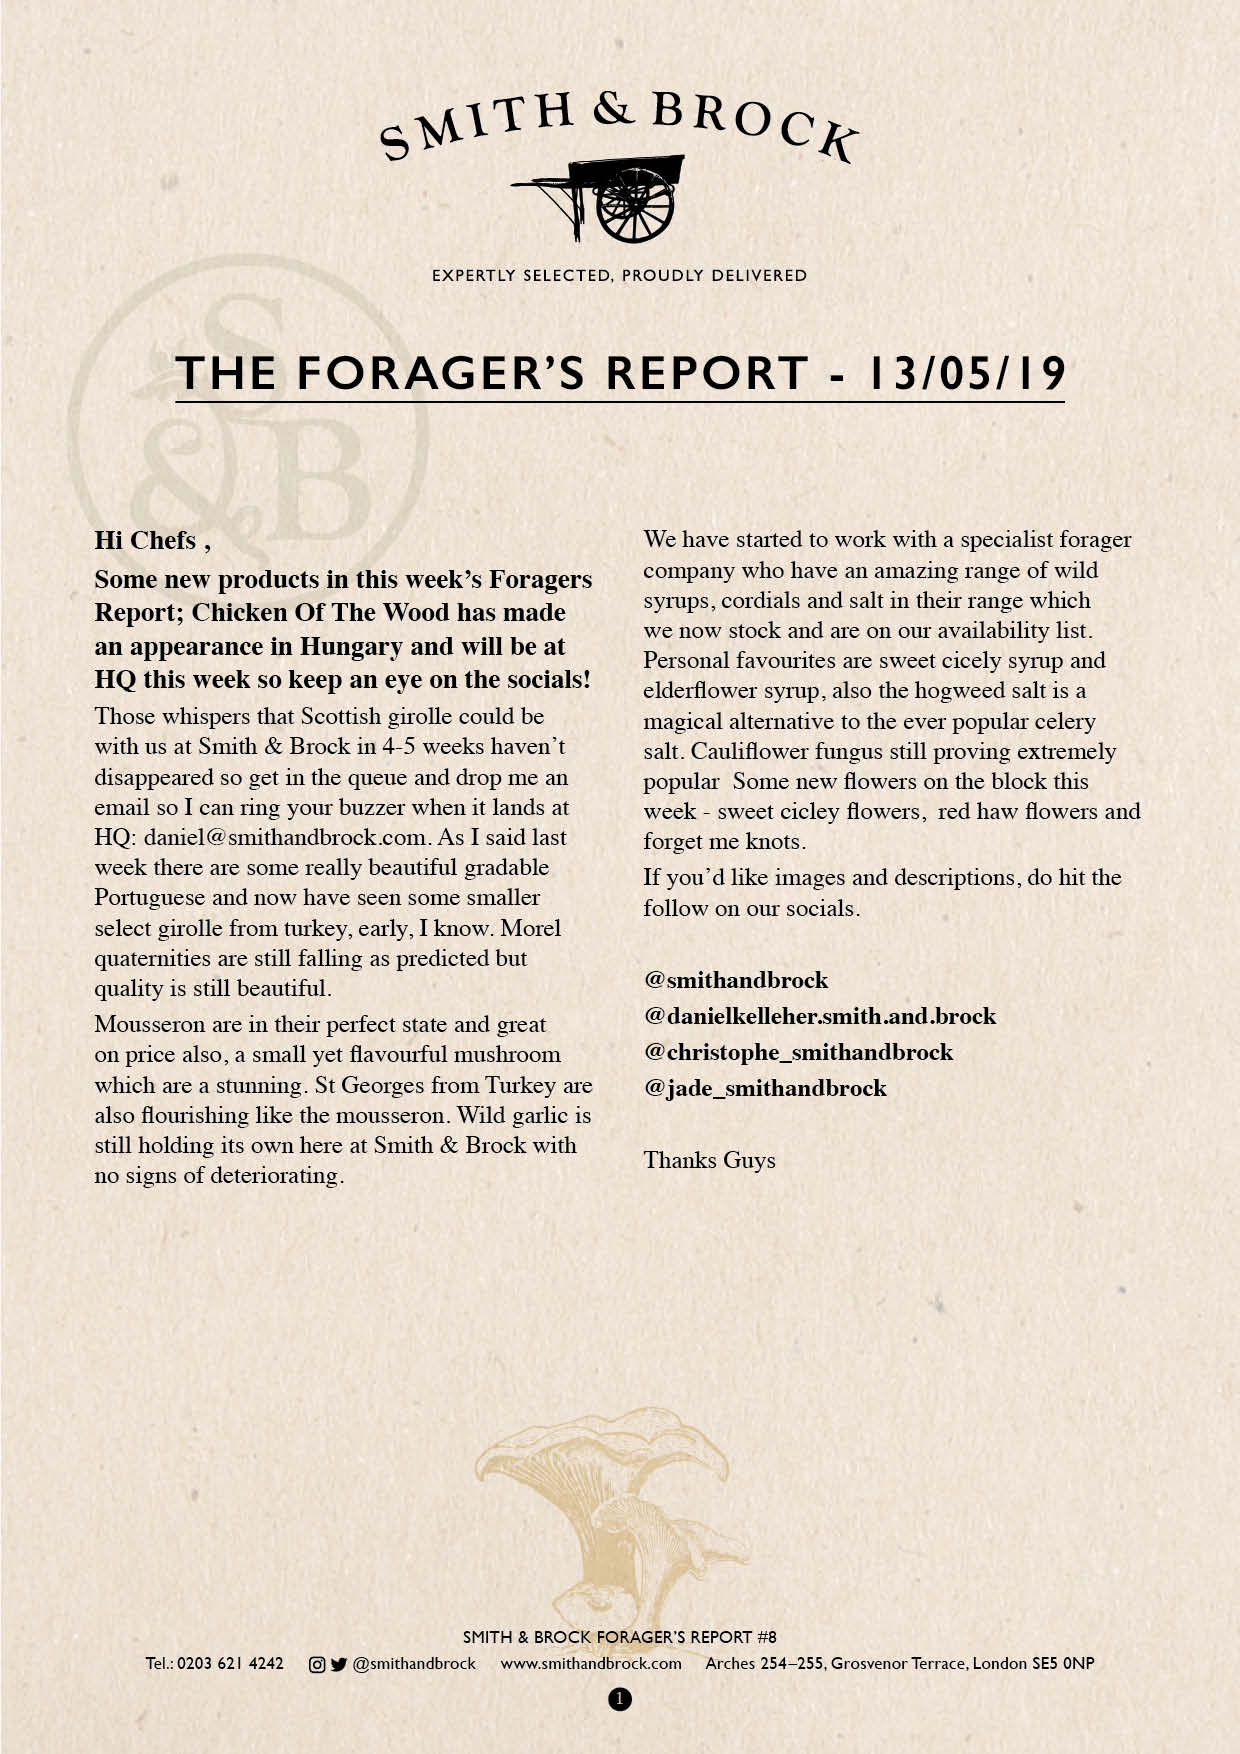 Smith&Brock Foraged Products Report 13 May 2019 #8